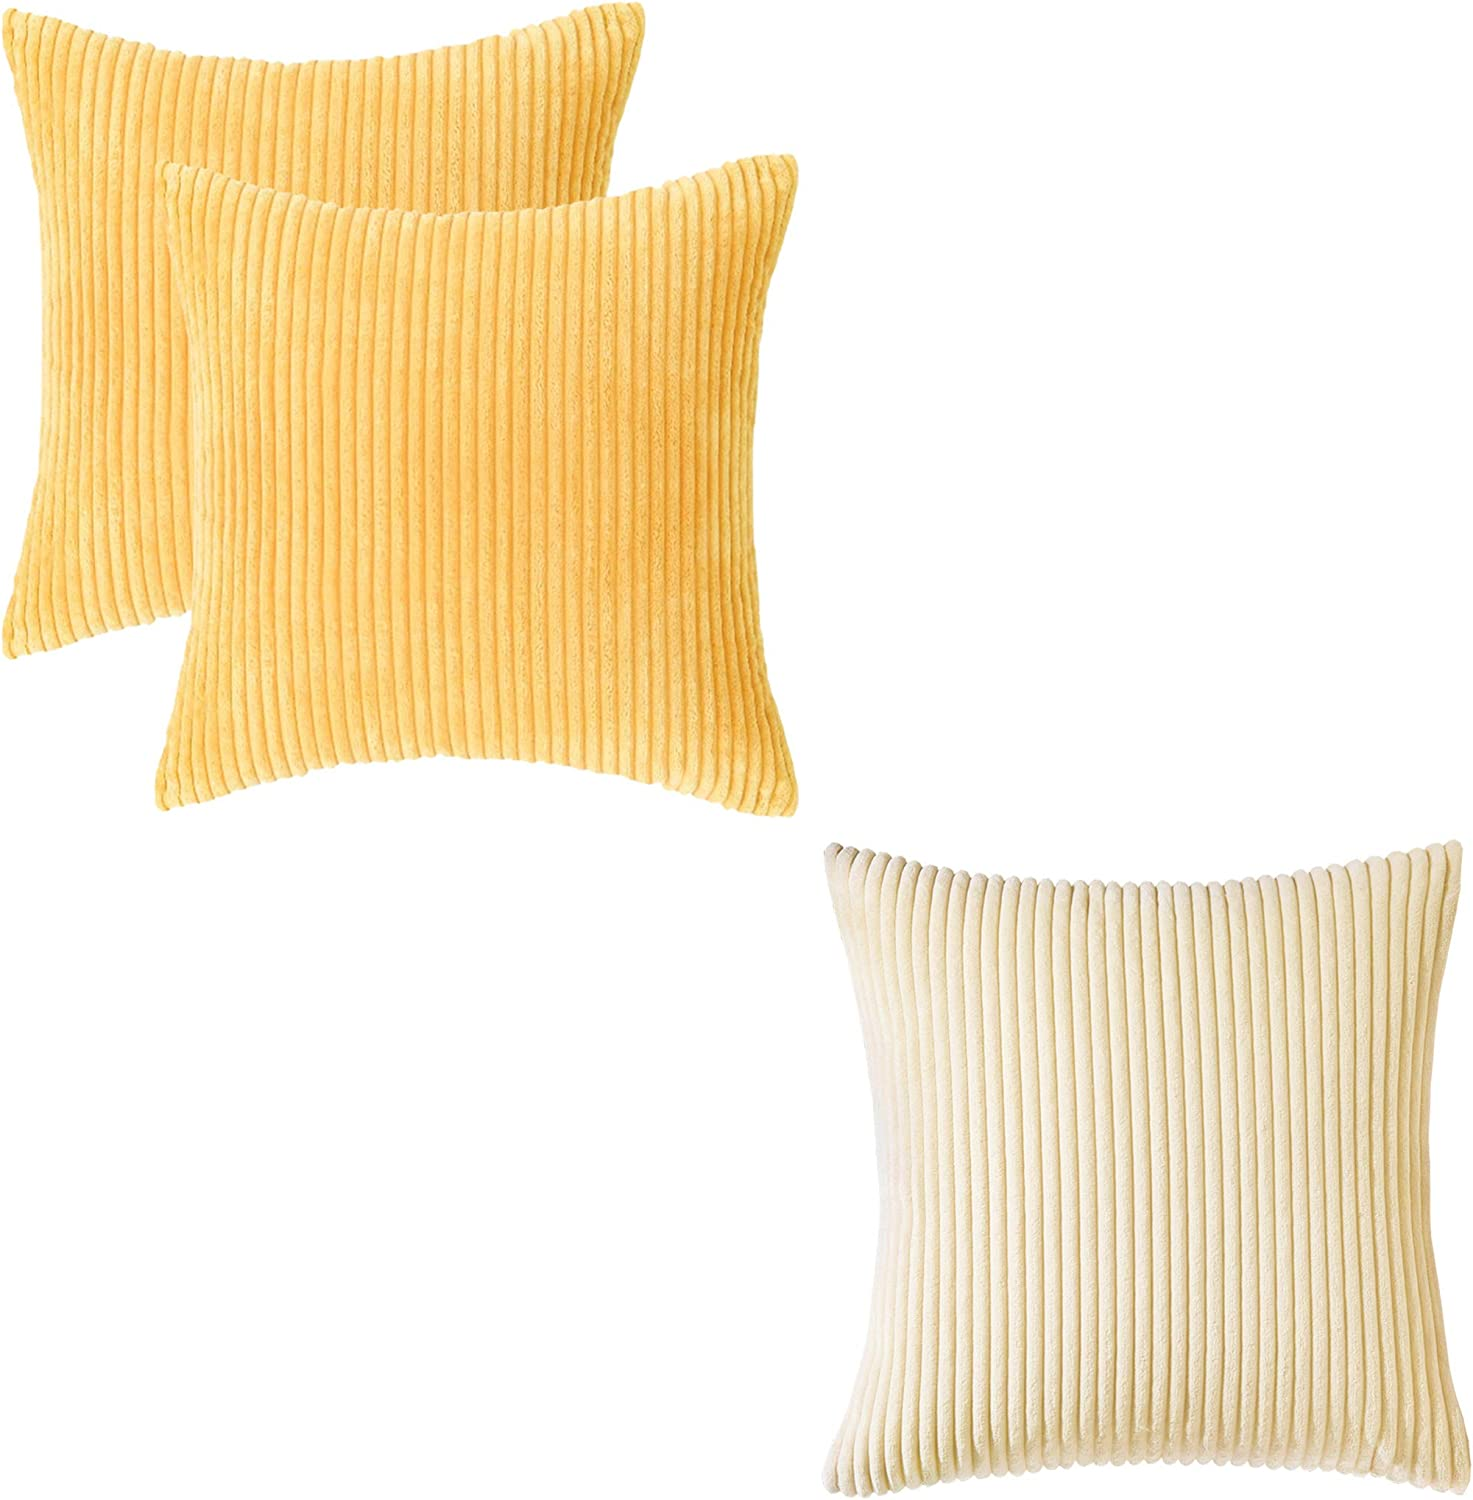 Home Brilliant Corduroy Striped Velvet Pillow Covers 18 inch Yellow, 2 pcs Bundle with Cream Cheese Pillow Covers 1 pc